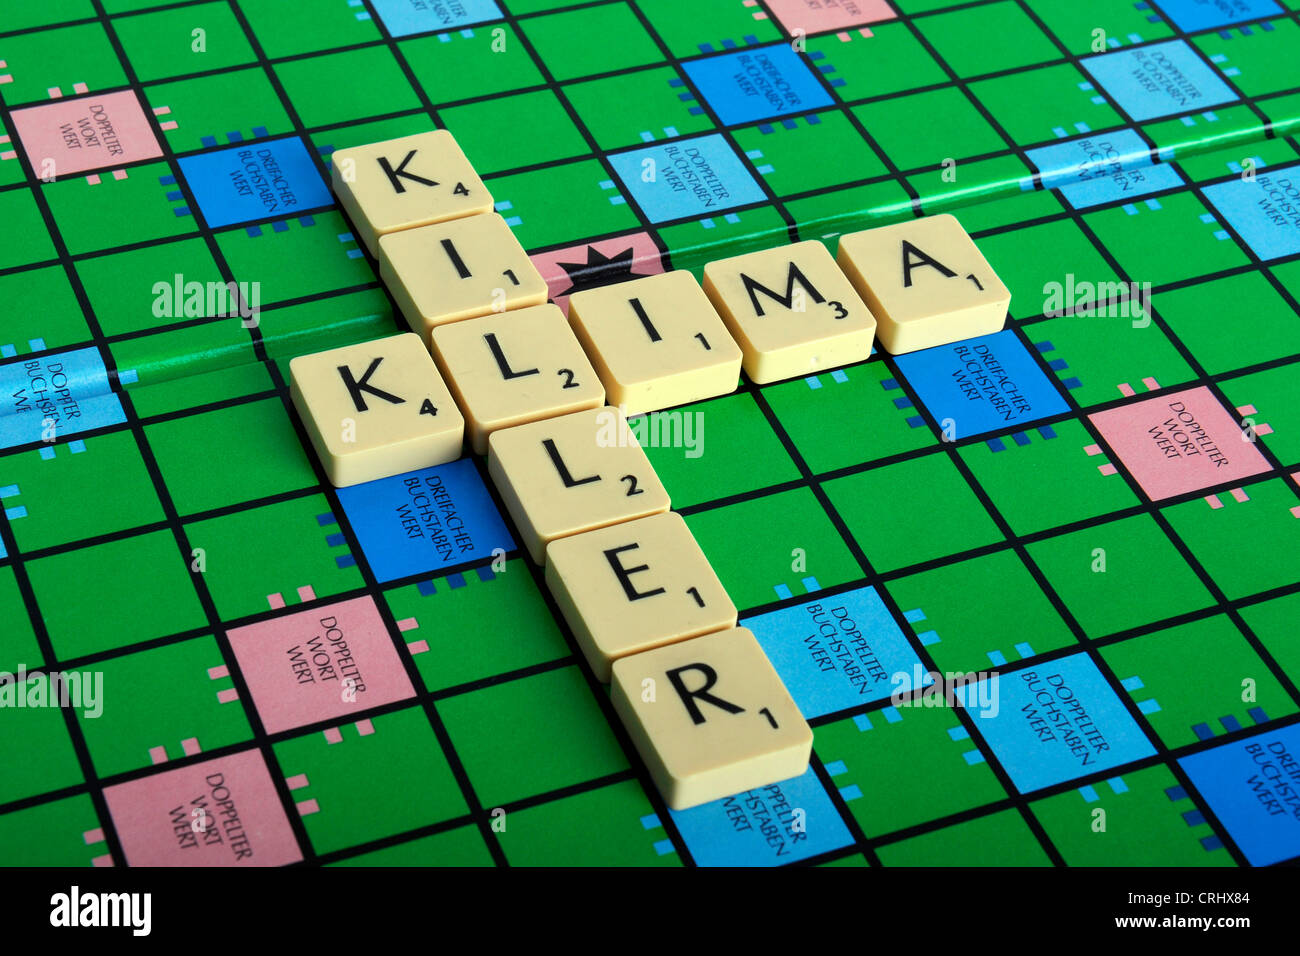 Scrabble field with the words 'Erderwaermung' and 'Killer' - Stock Image